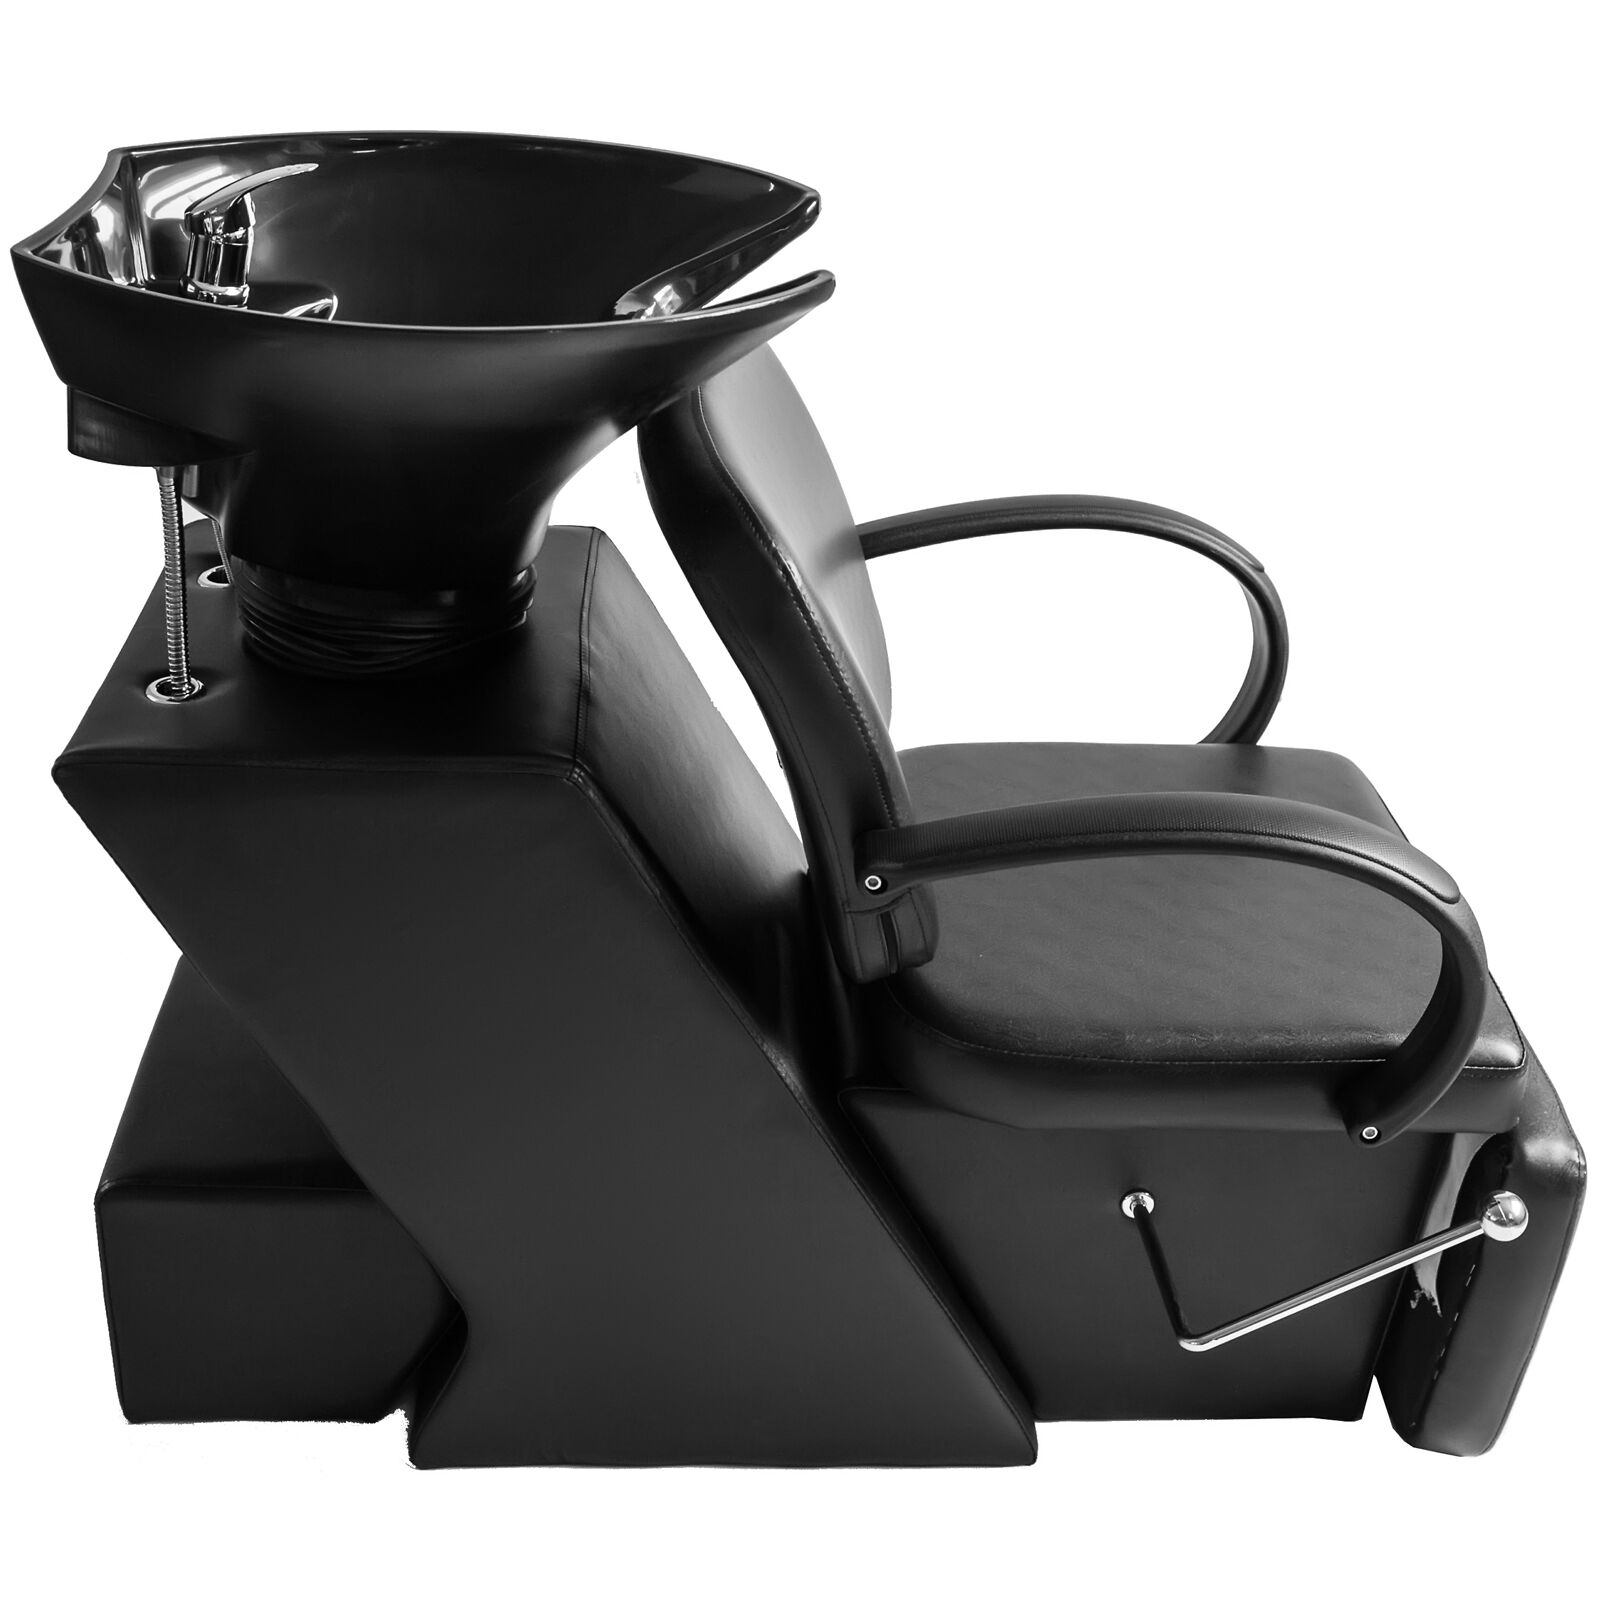 Salon Sink And Chair Shampoo Salon Backwash Bowl Barber Chair Sink Unit Spa